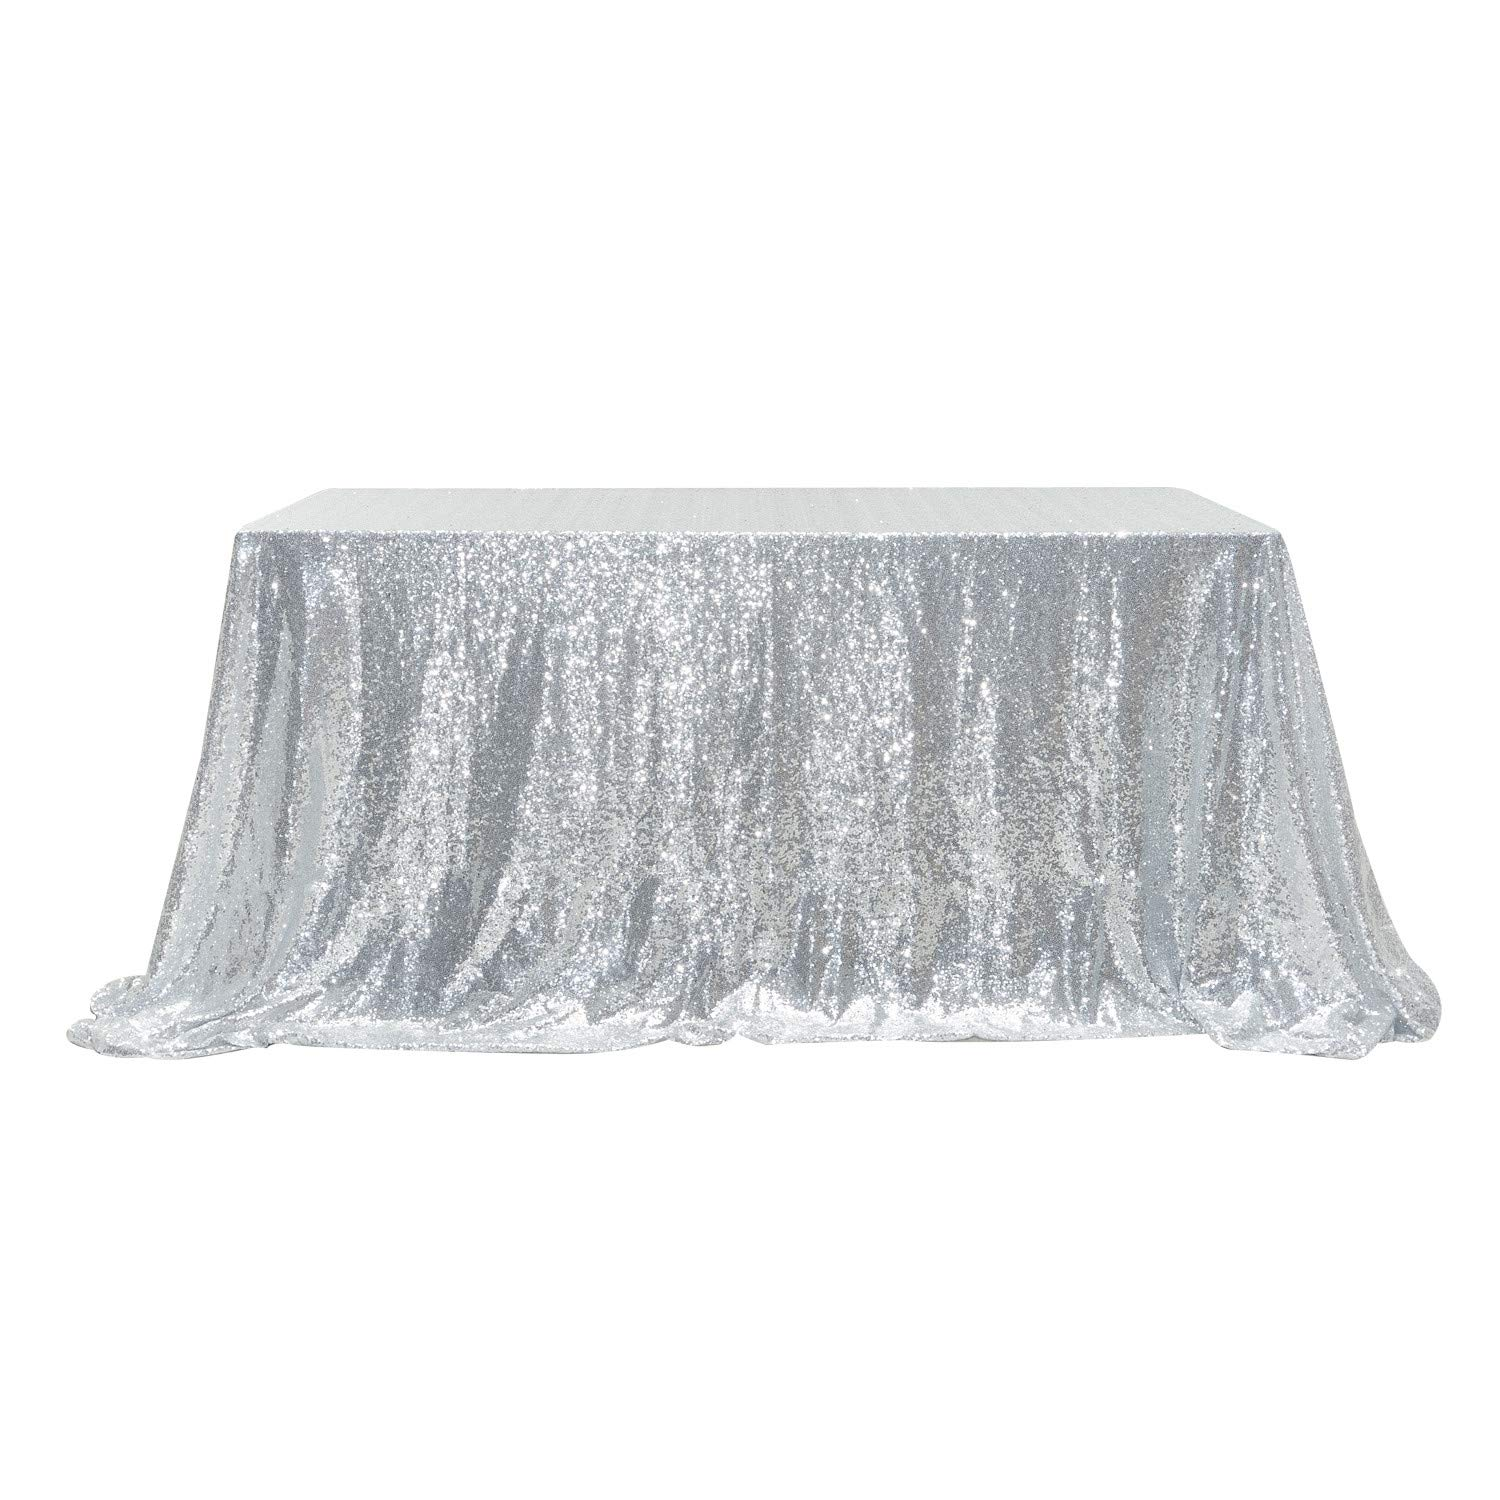 "PartyDelight Sequin Tablecloth, Rectangular, 60""x120"", Silver"